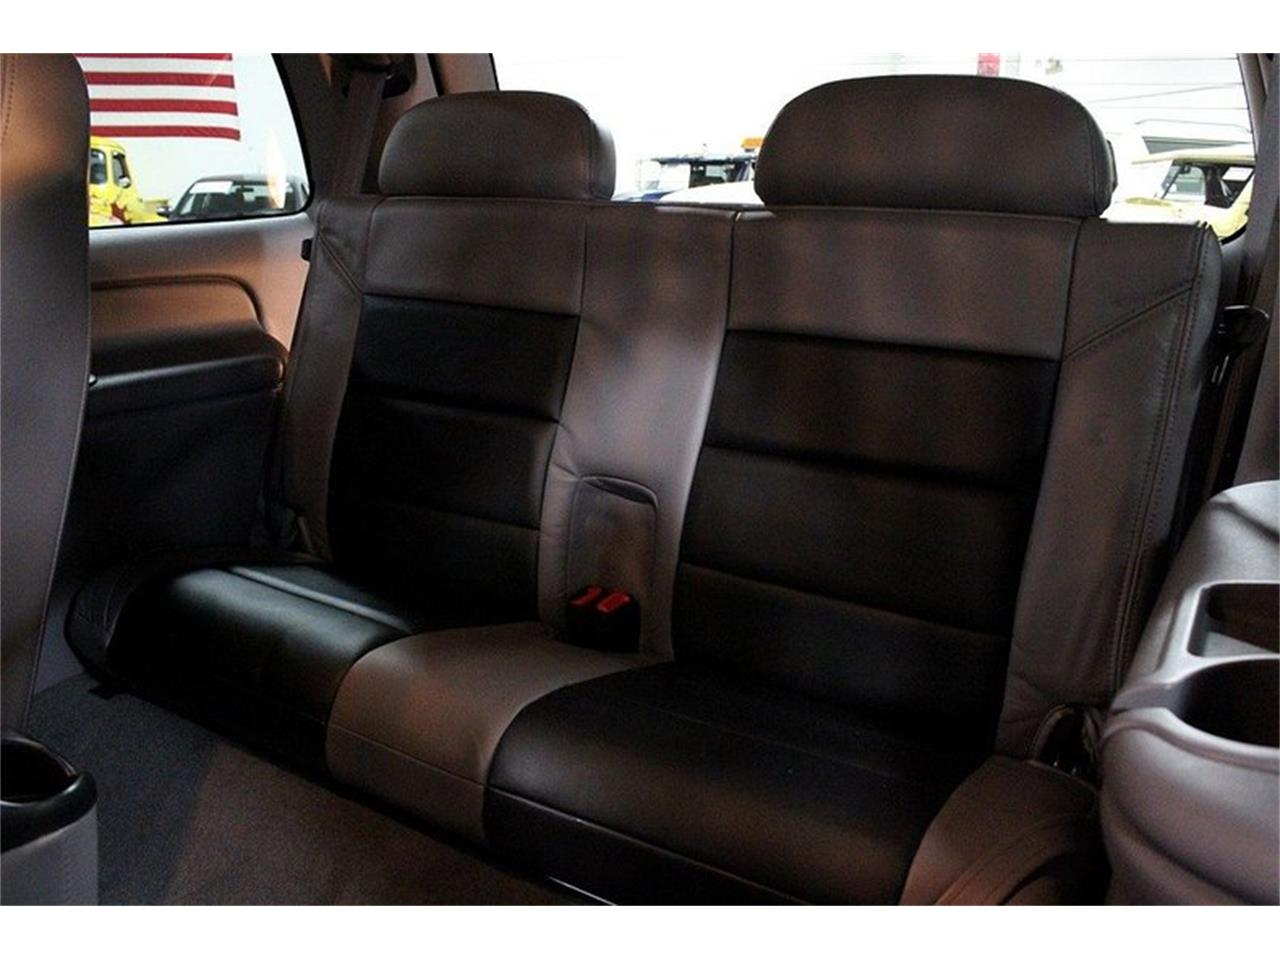 Large Picture of '99 Durango Shelby SP-360 located in Kentwood Michigan Offered by GR Auto Gallery - MB1Y